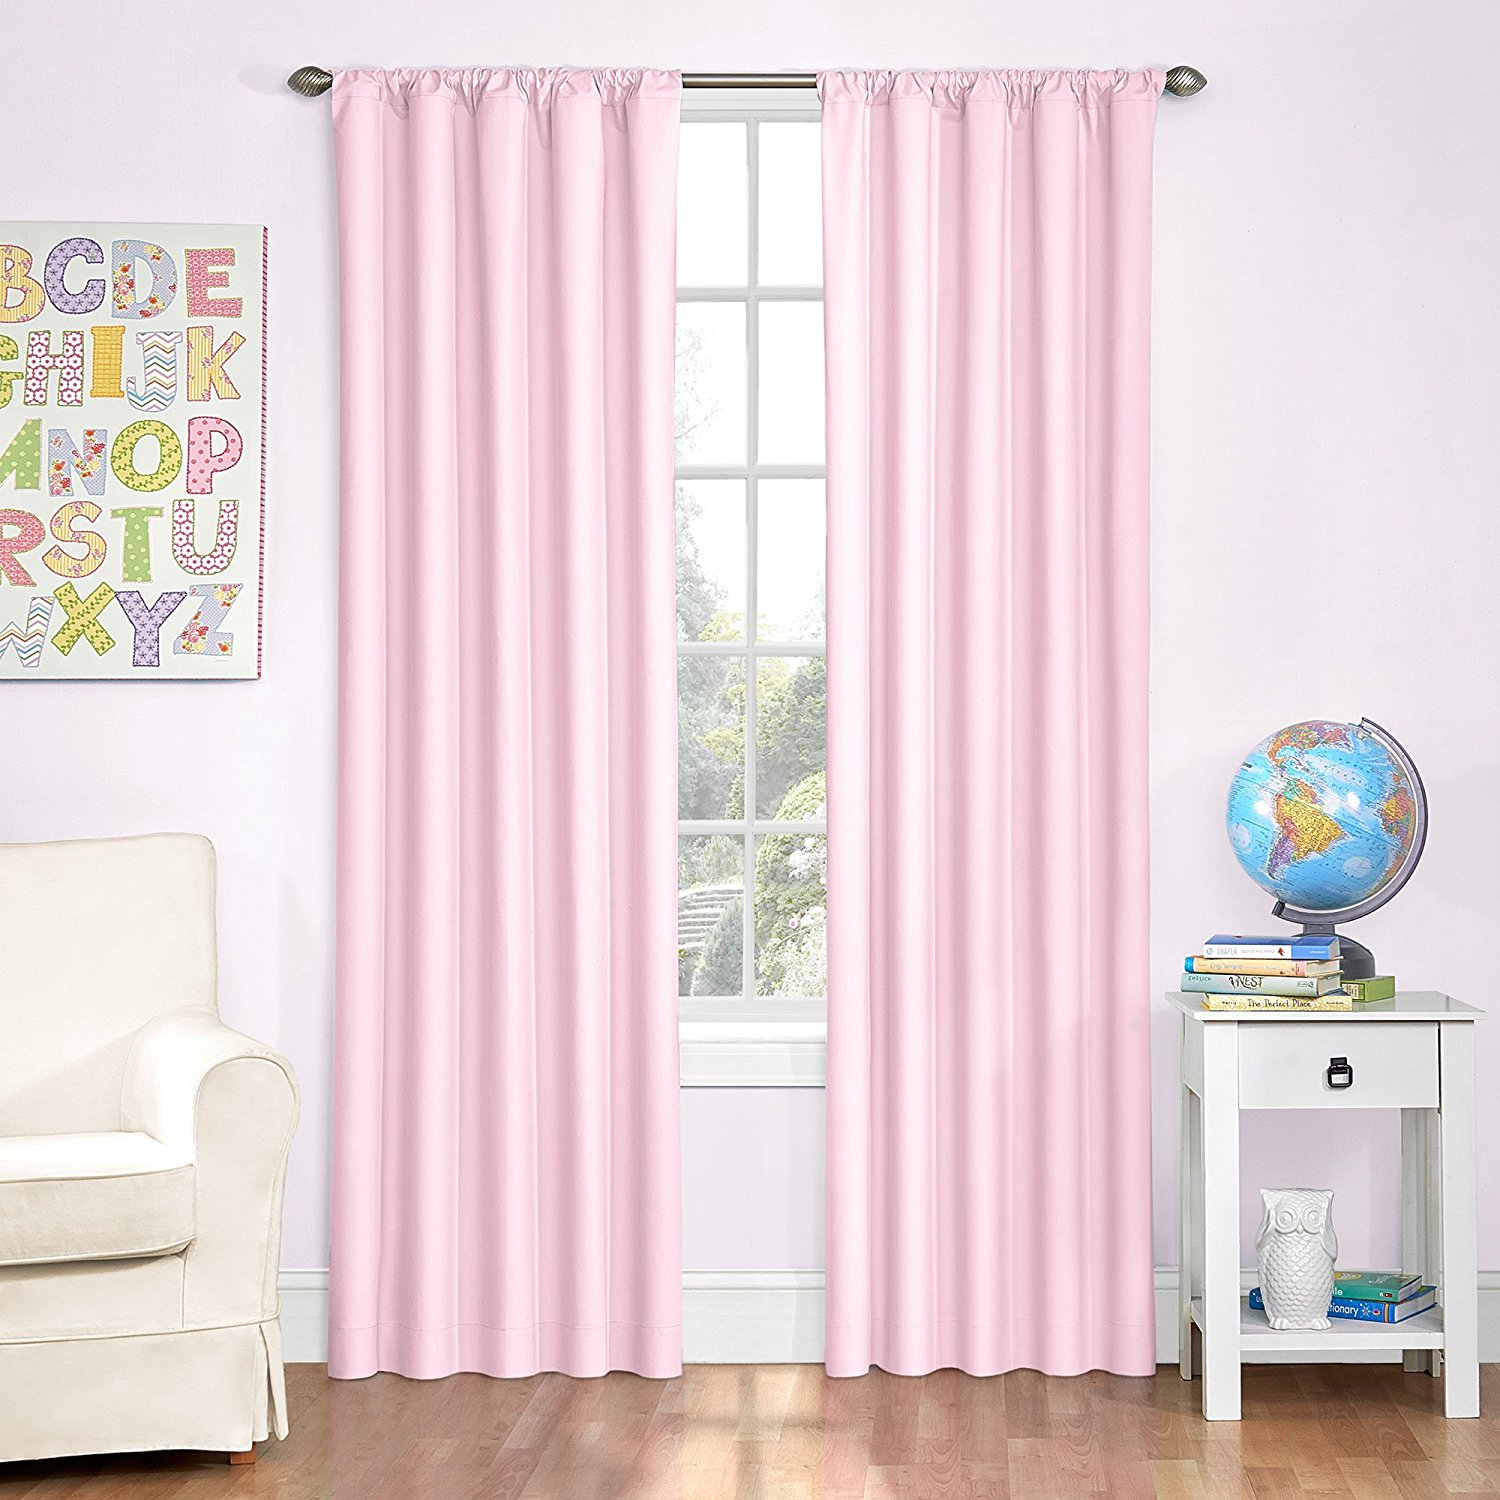 Curtain: Best Walmart Eclipse Curtains For Home Decor With Regard To Eclipse Newport Blackout Curtain Panels (View 15 of 20)